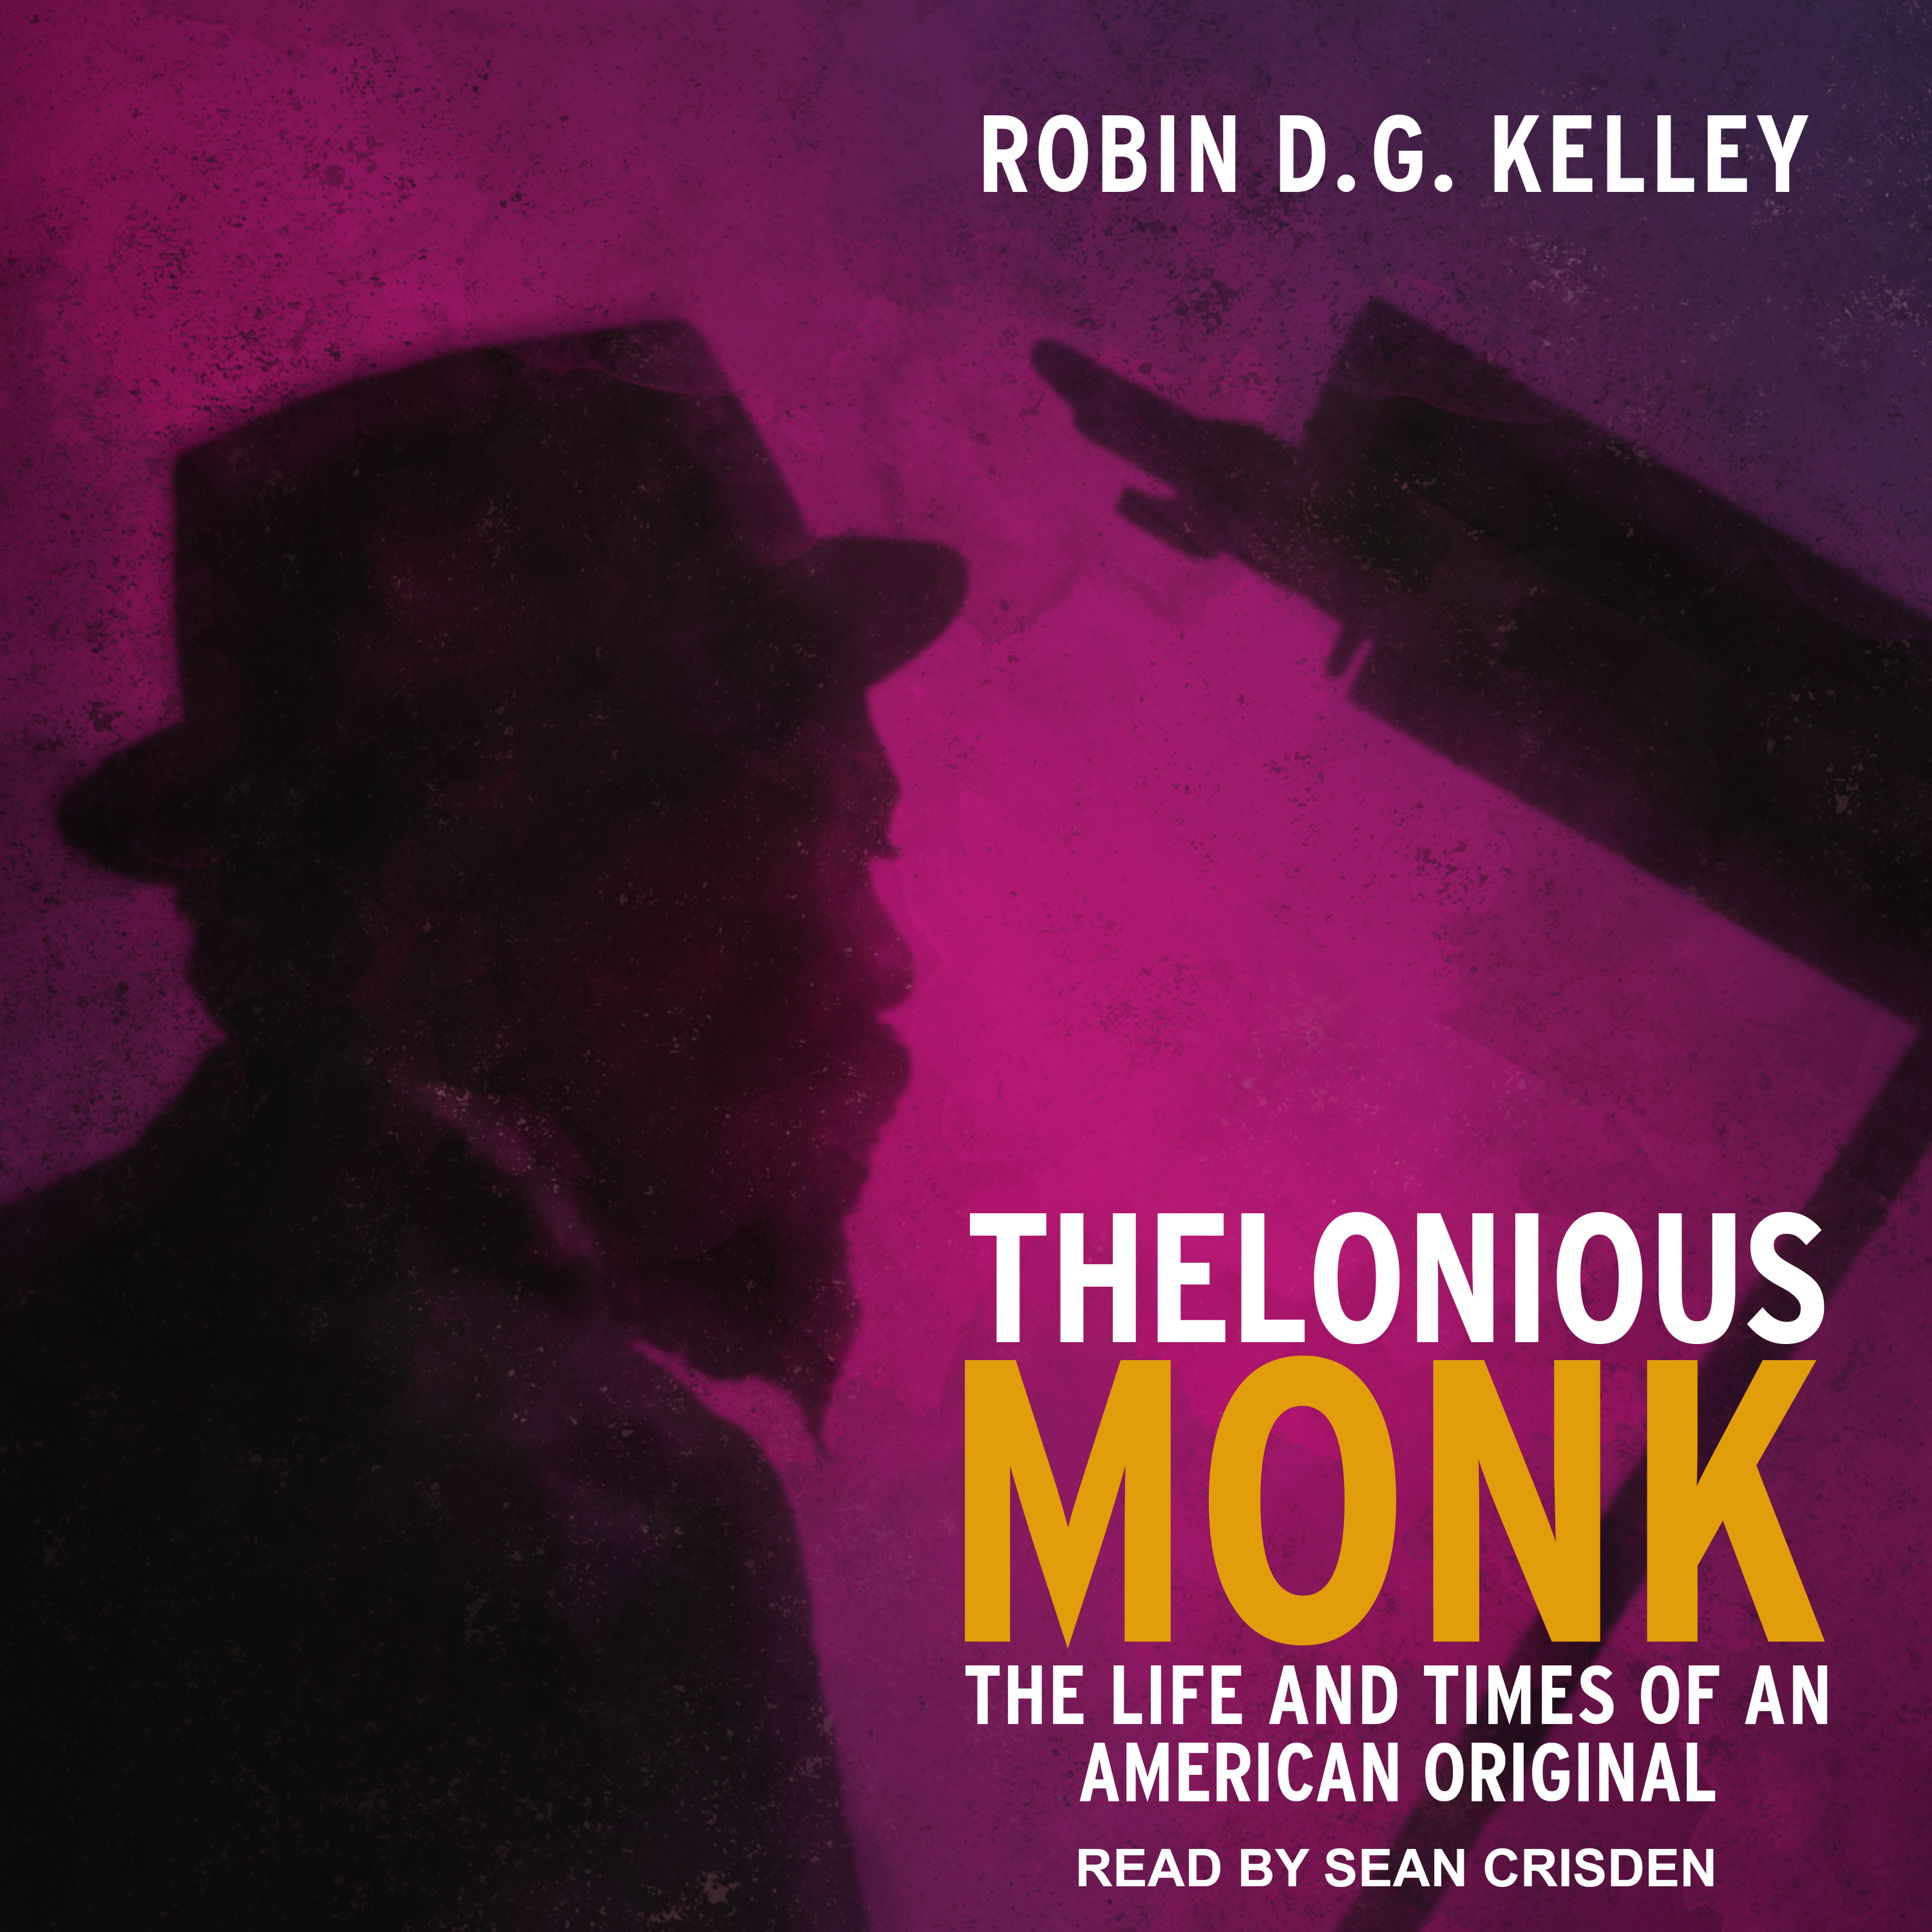 Printable Thelonious Monk: The Life and Times of an American Original Audiobook Cover Art